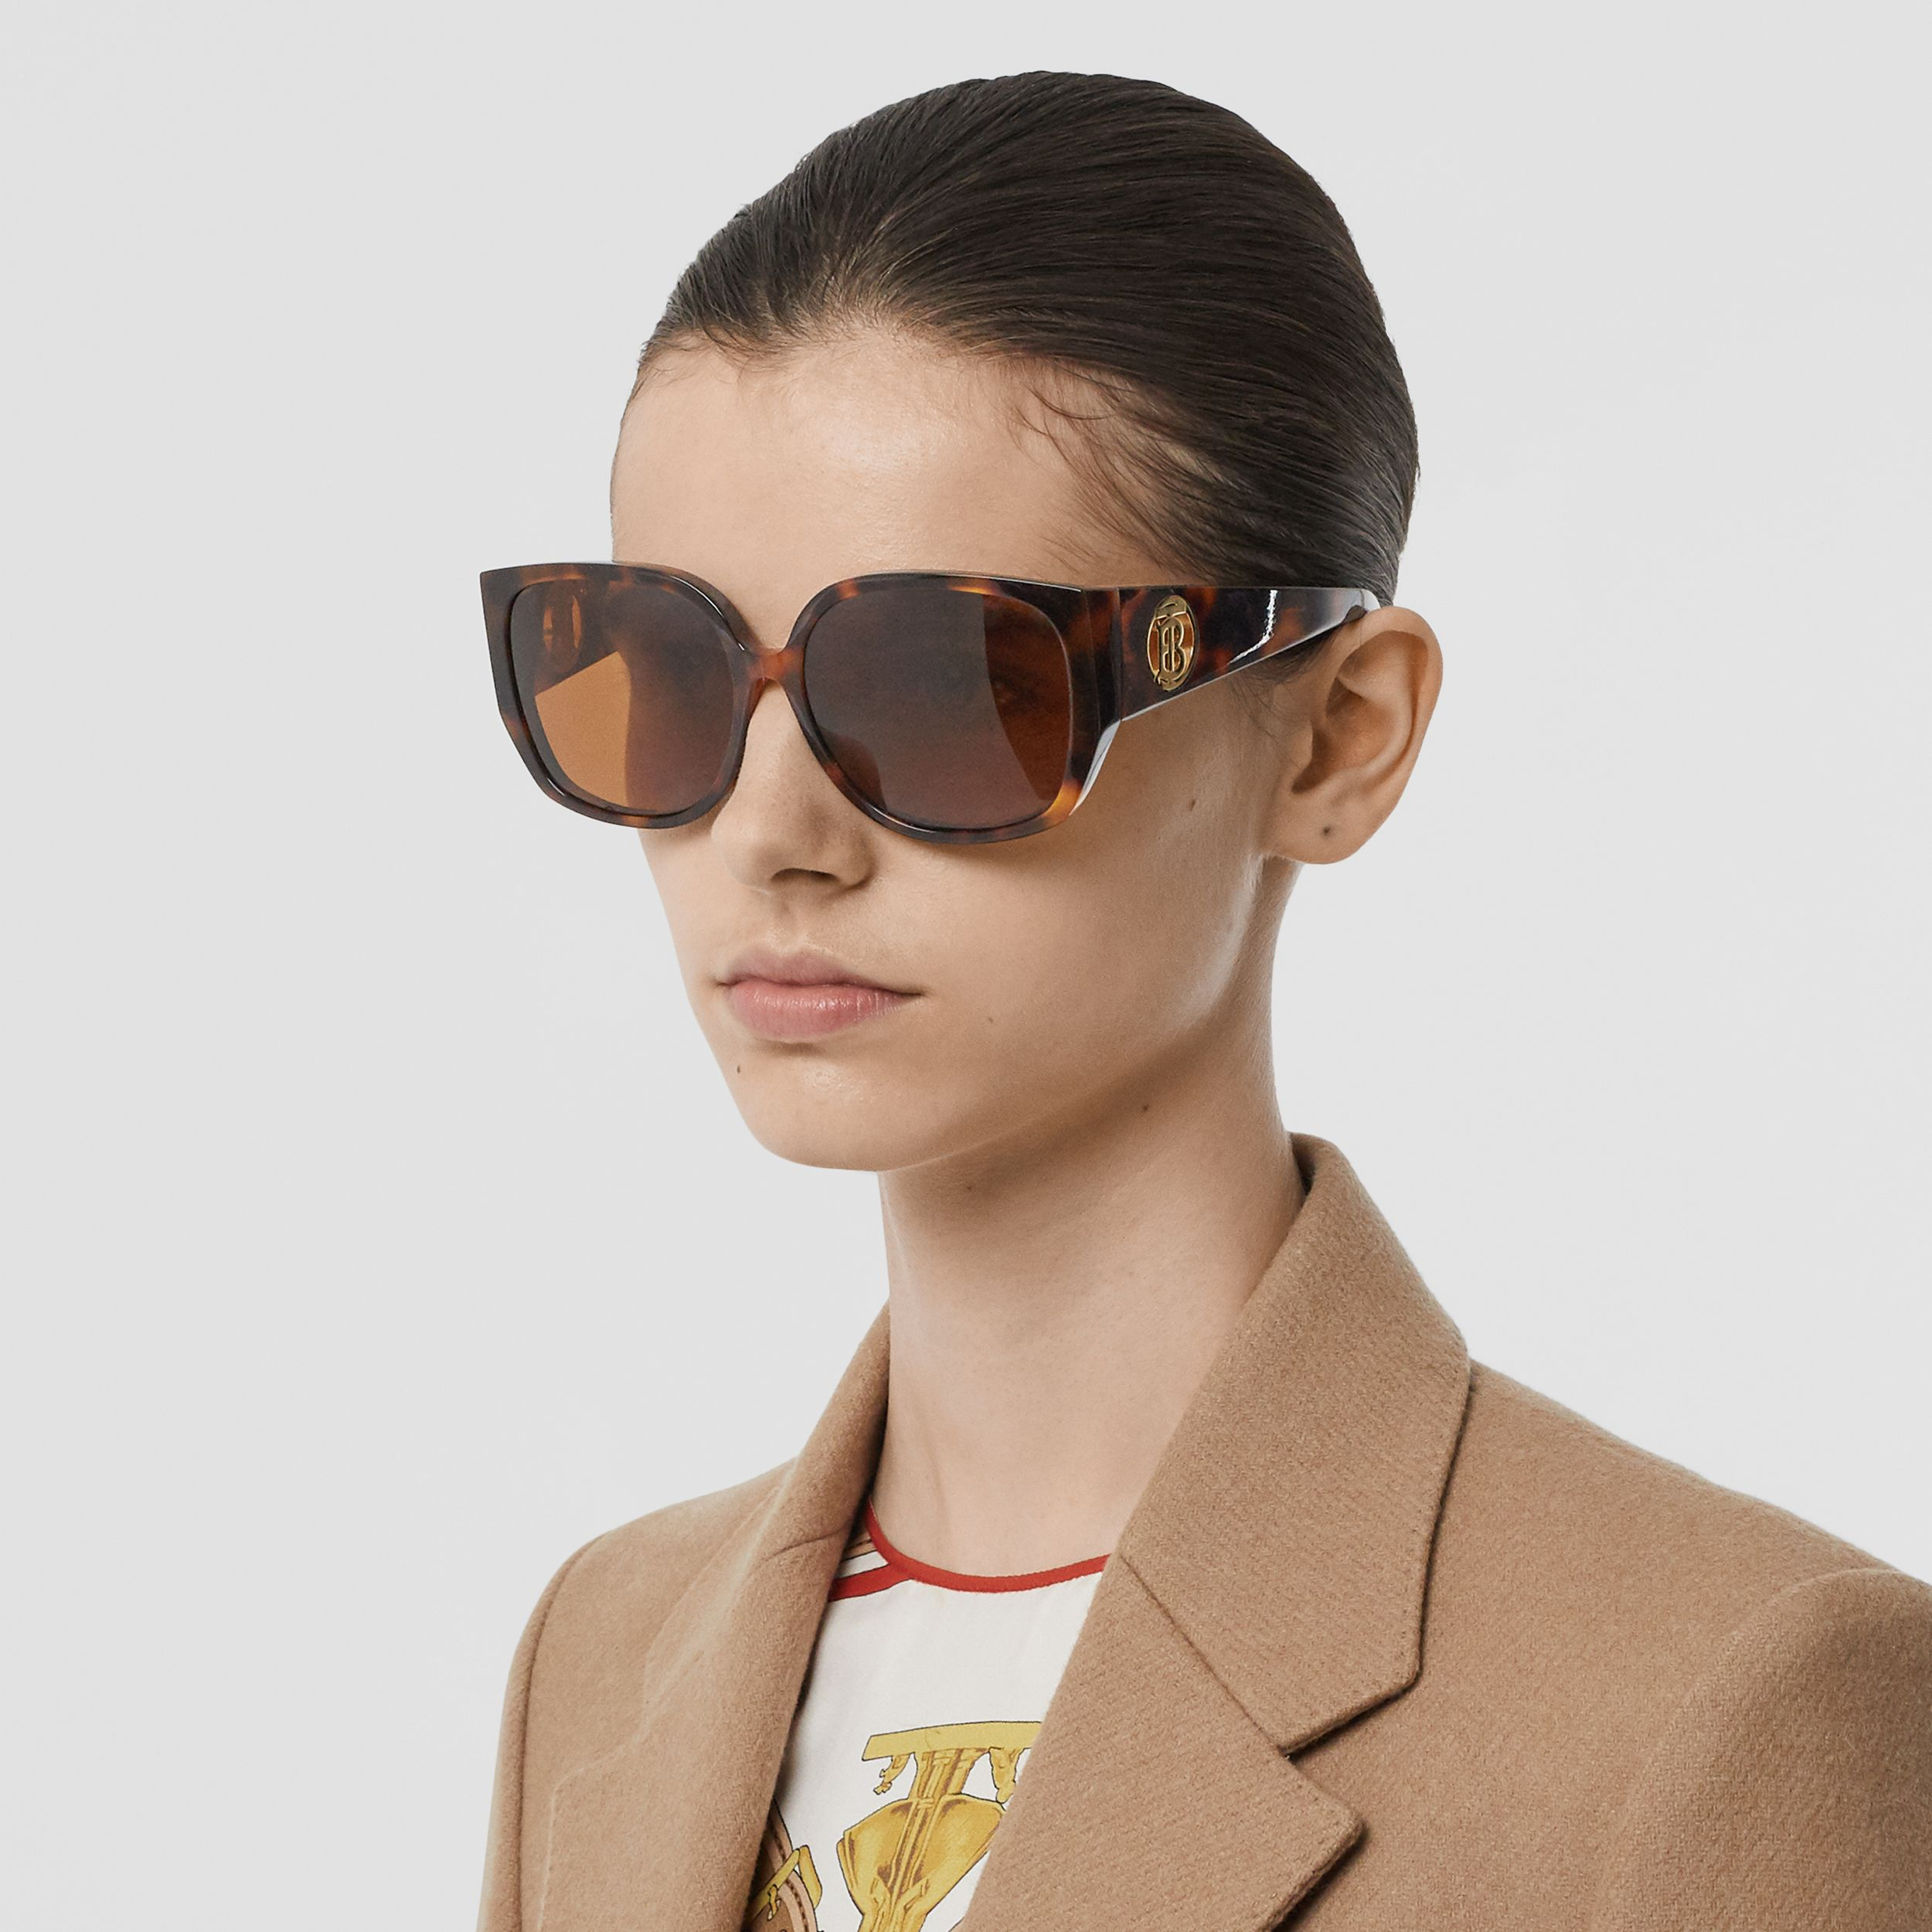 Oversized Butterfly Frame Sunglasses in Tortoiseshell - Women | Burberry United States - 3